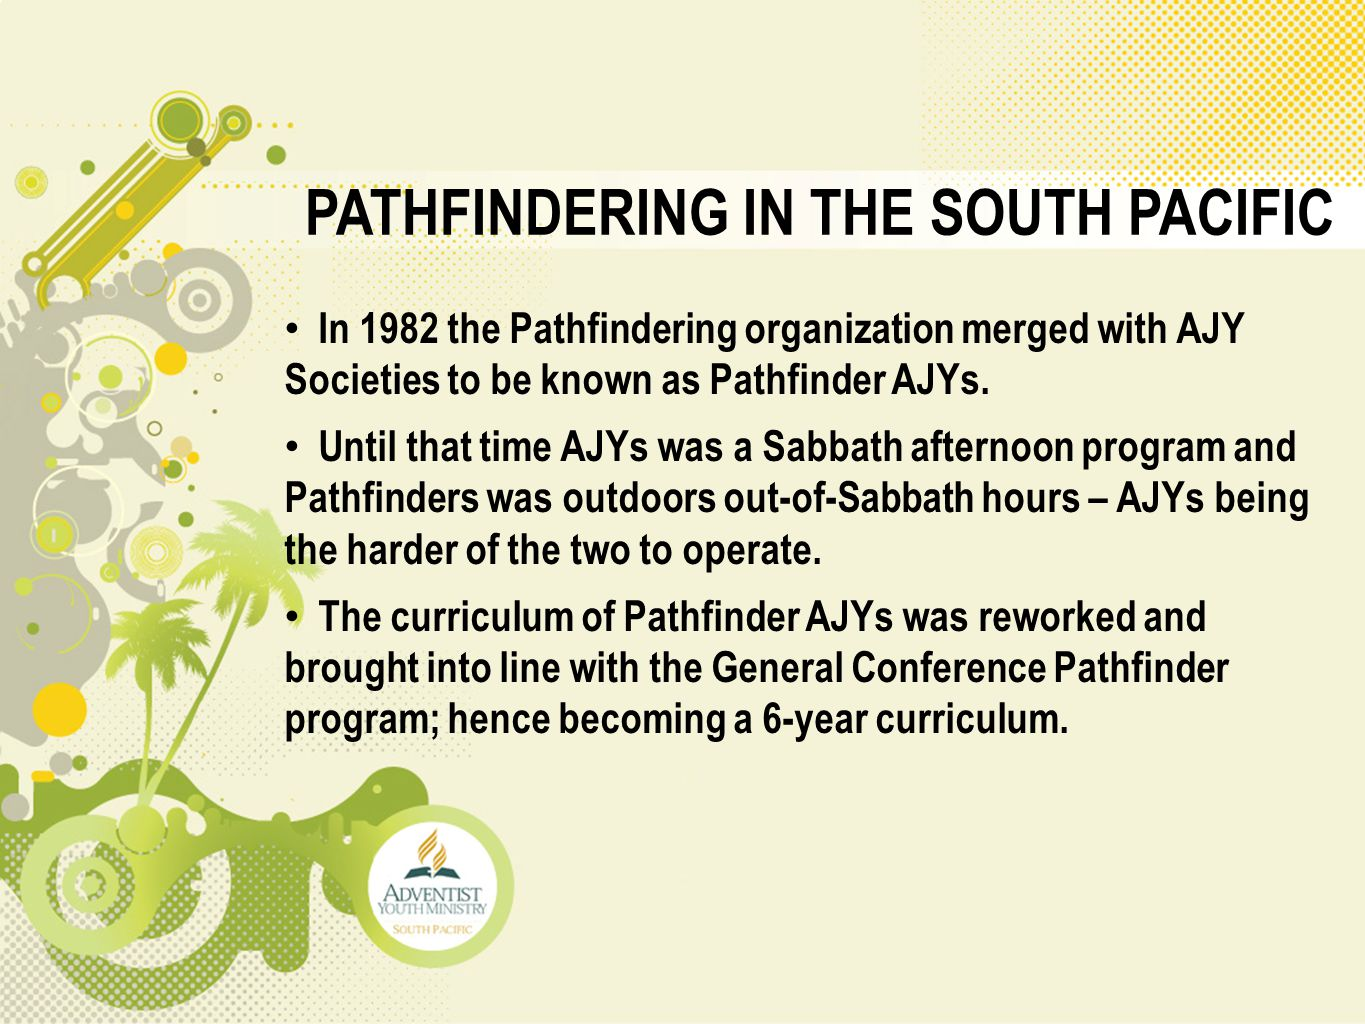 PATHFINDERING IN THE SOUTH PACIFIC